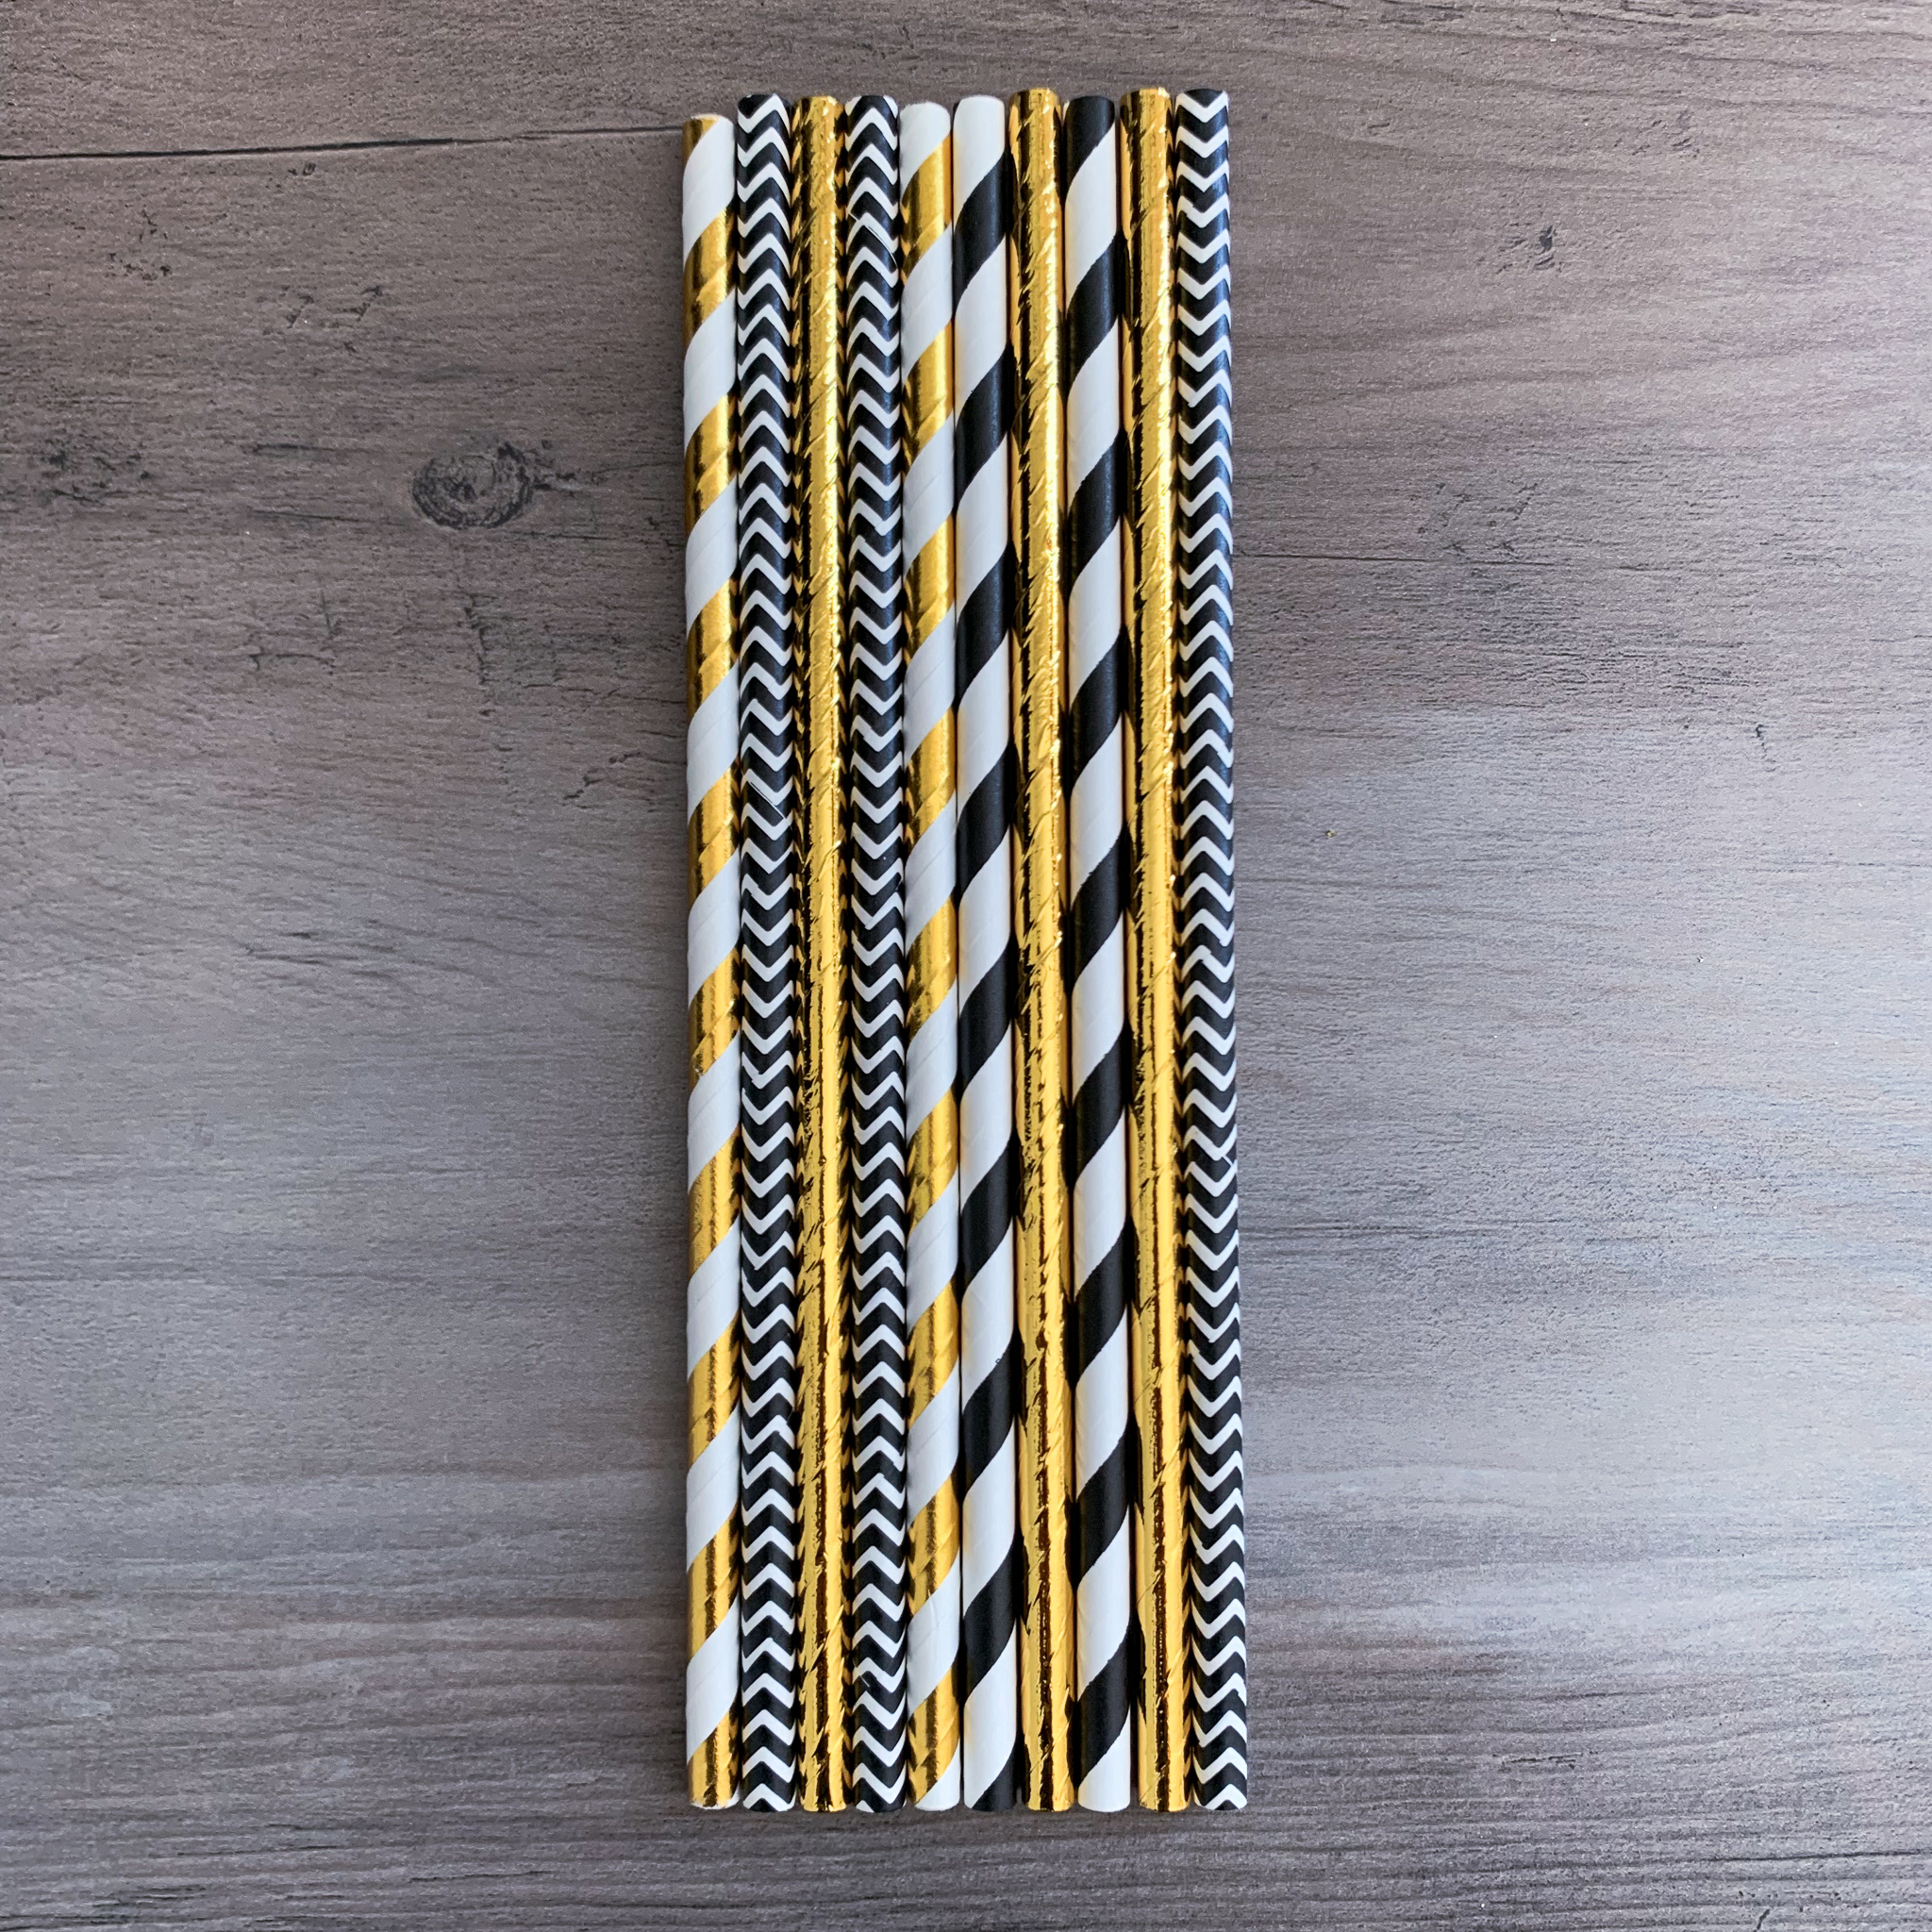 Paper Straws (10, 20, or 30)